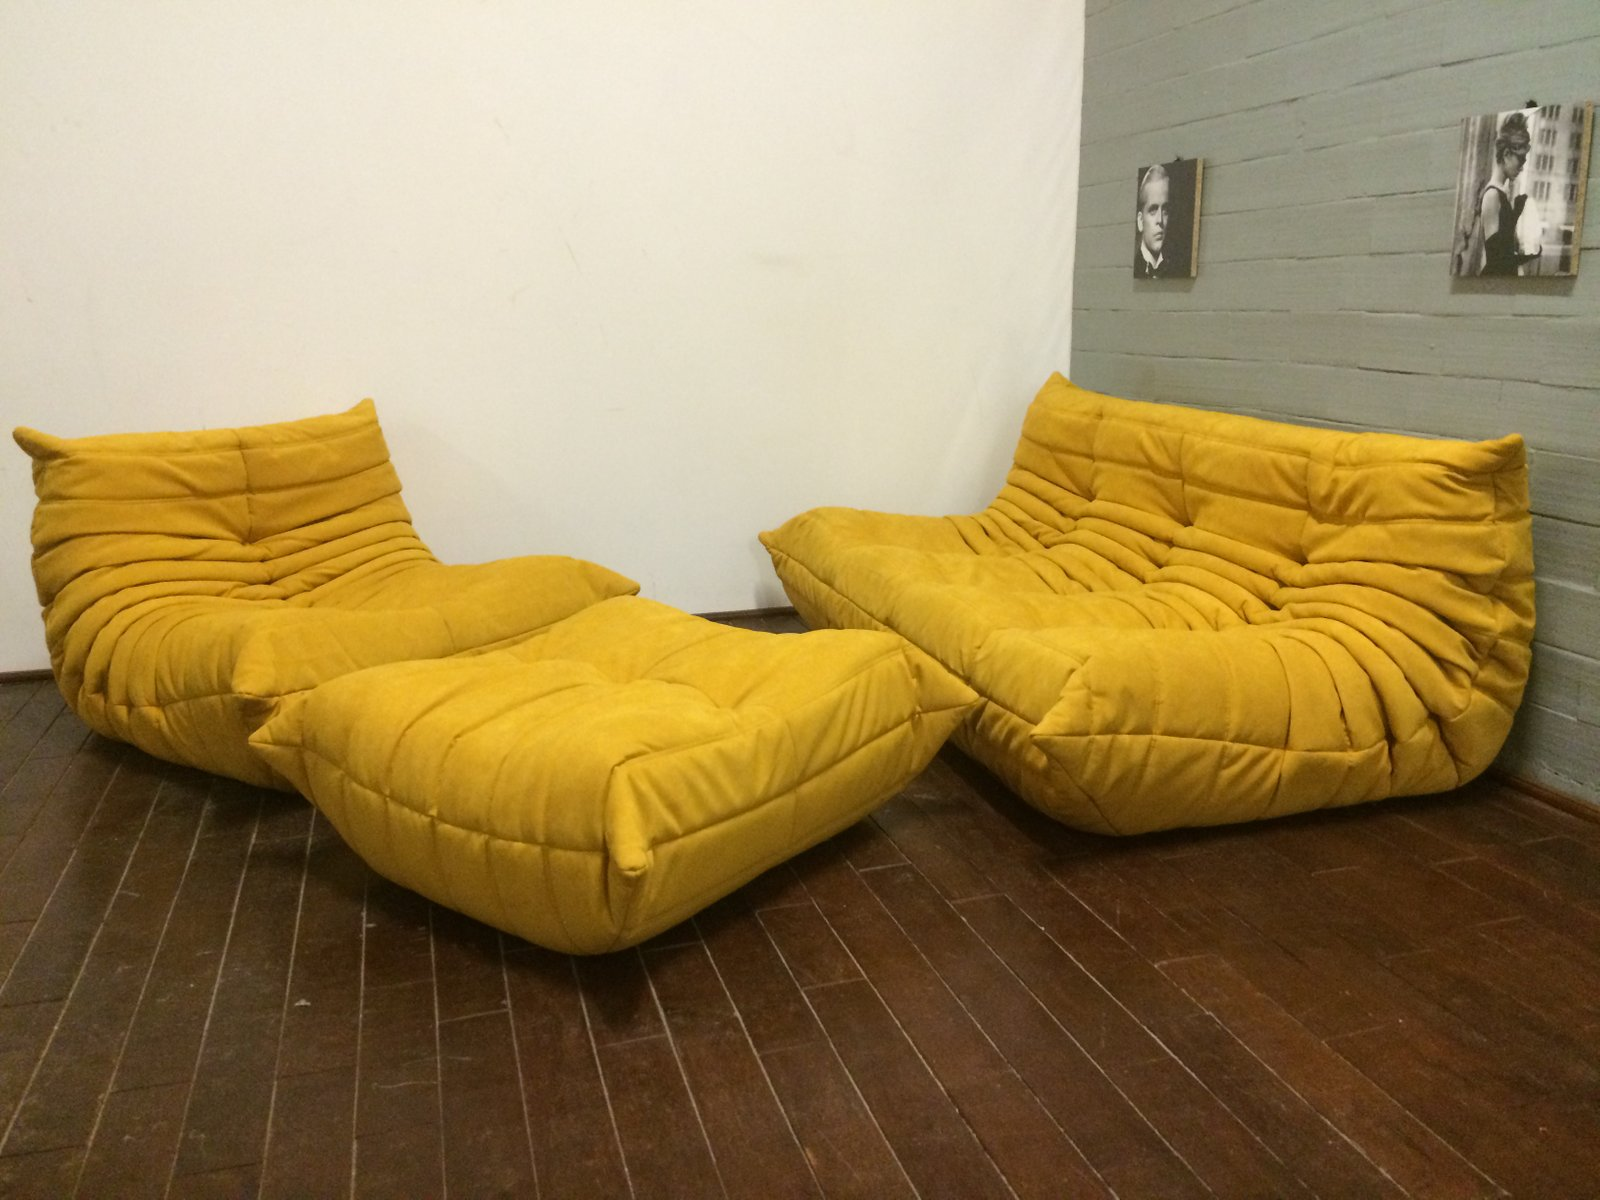 Yellow alcantara togo sofa set by michel ducaroy for ligne roset 1970s set of 3 for sale at pamono - Togo ligne roset ...